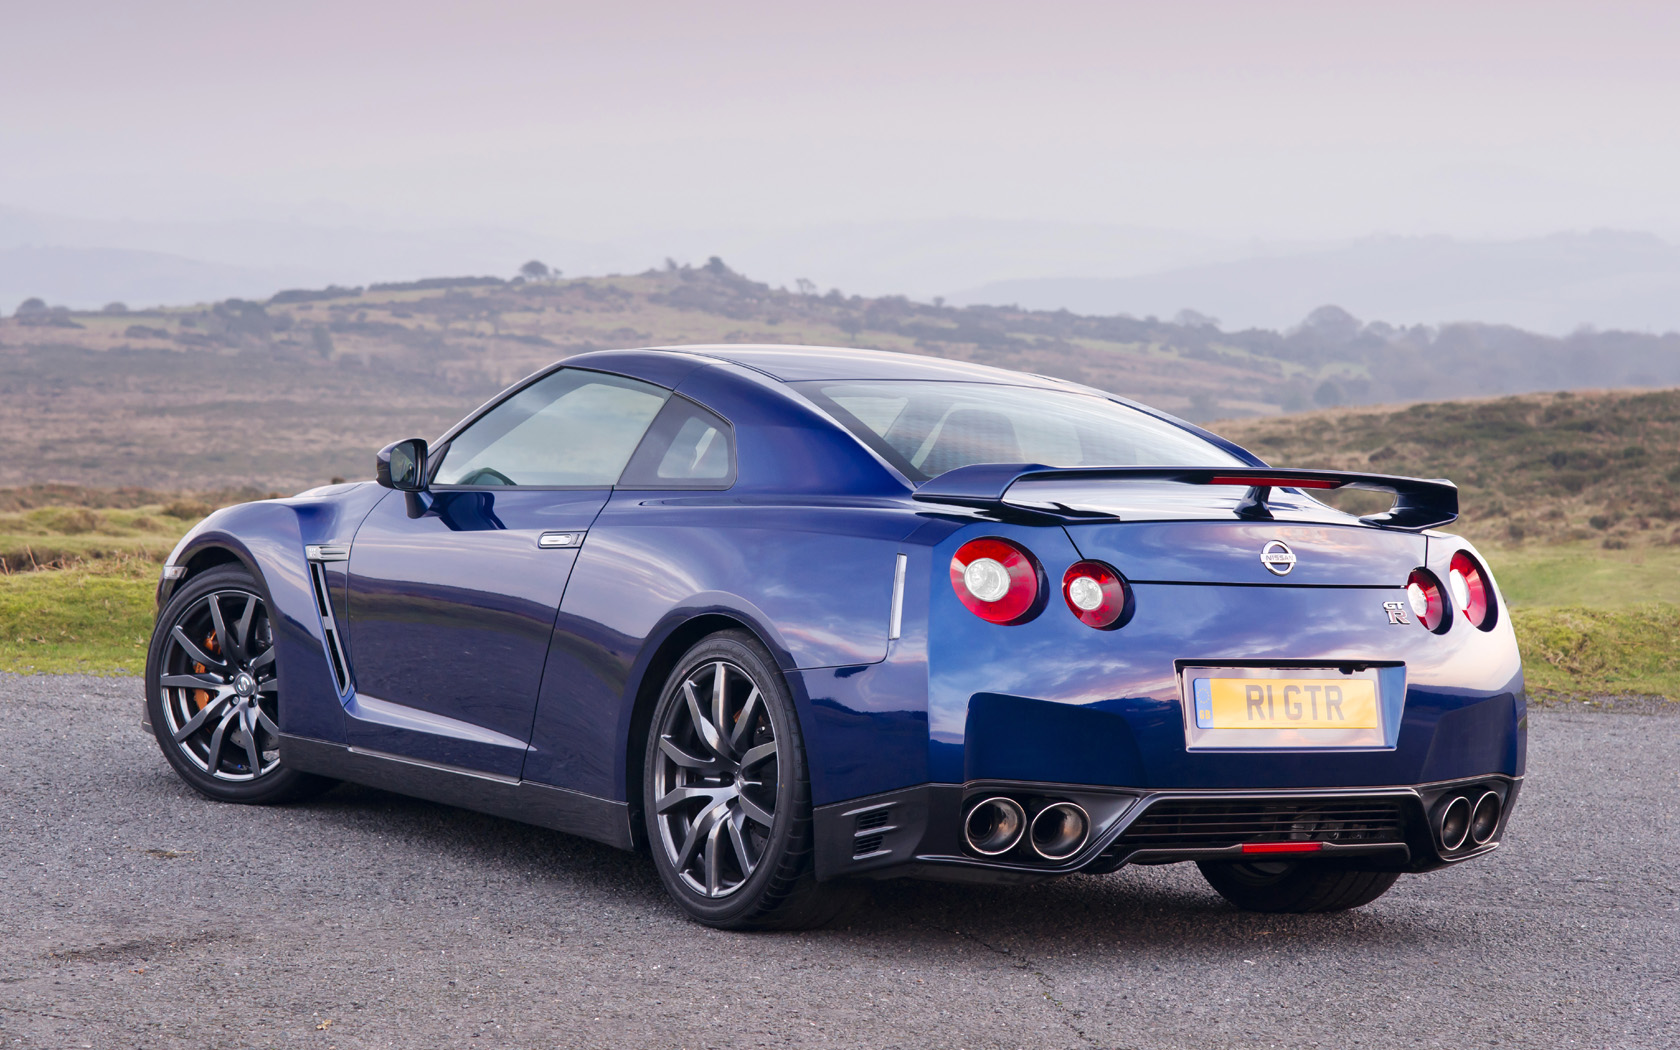 used nissan gtr car used cars vehicles singapore autos post